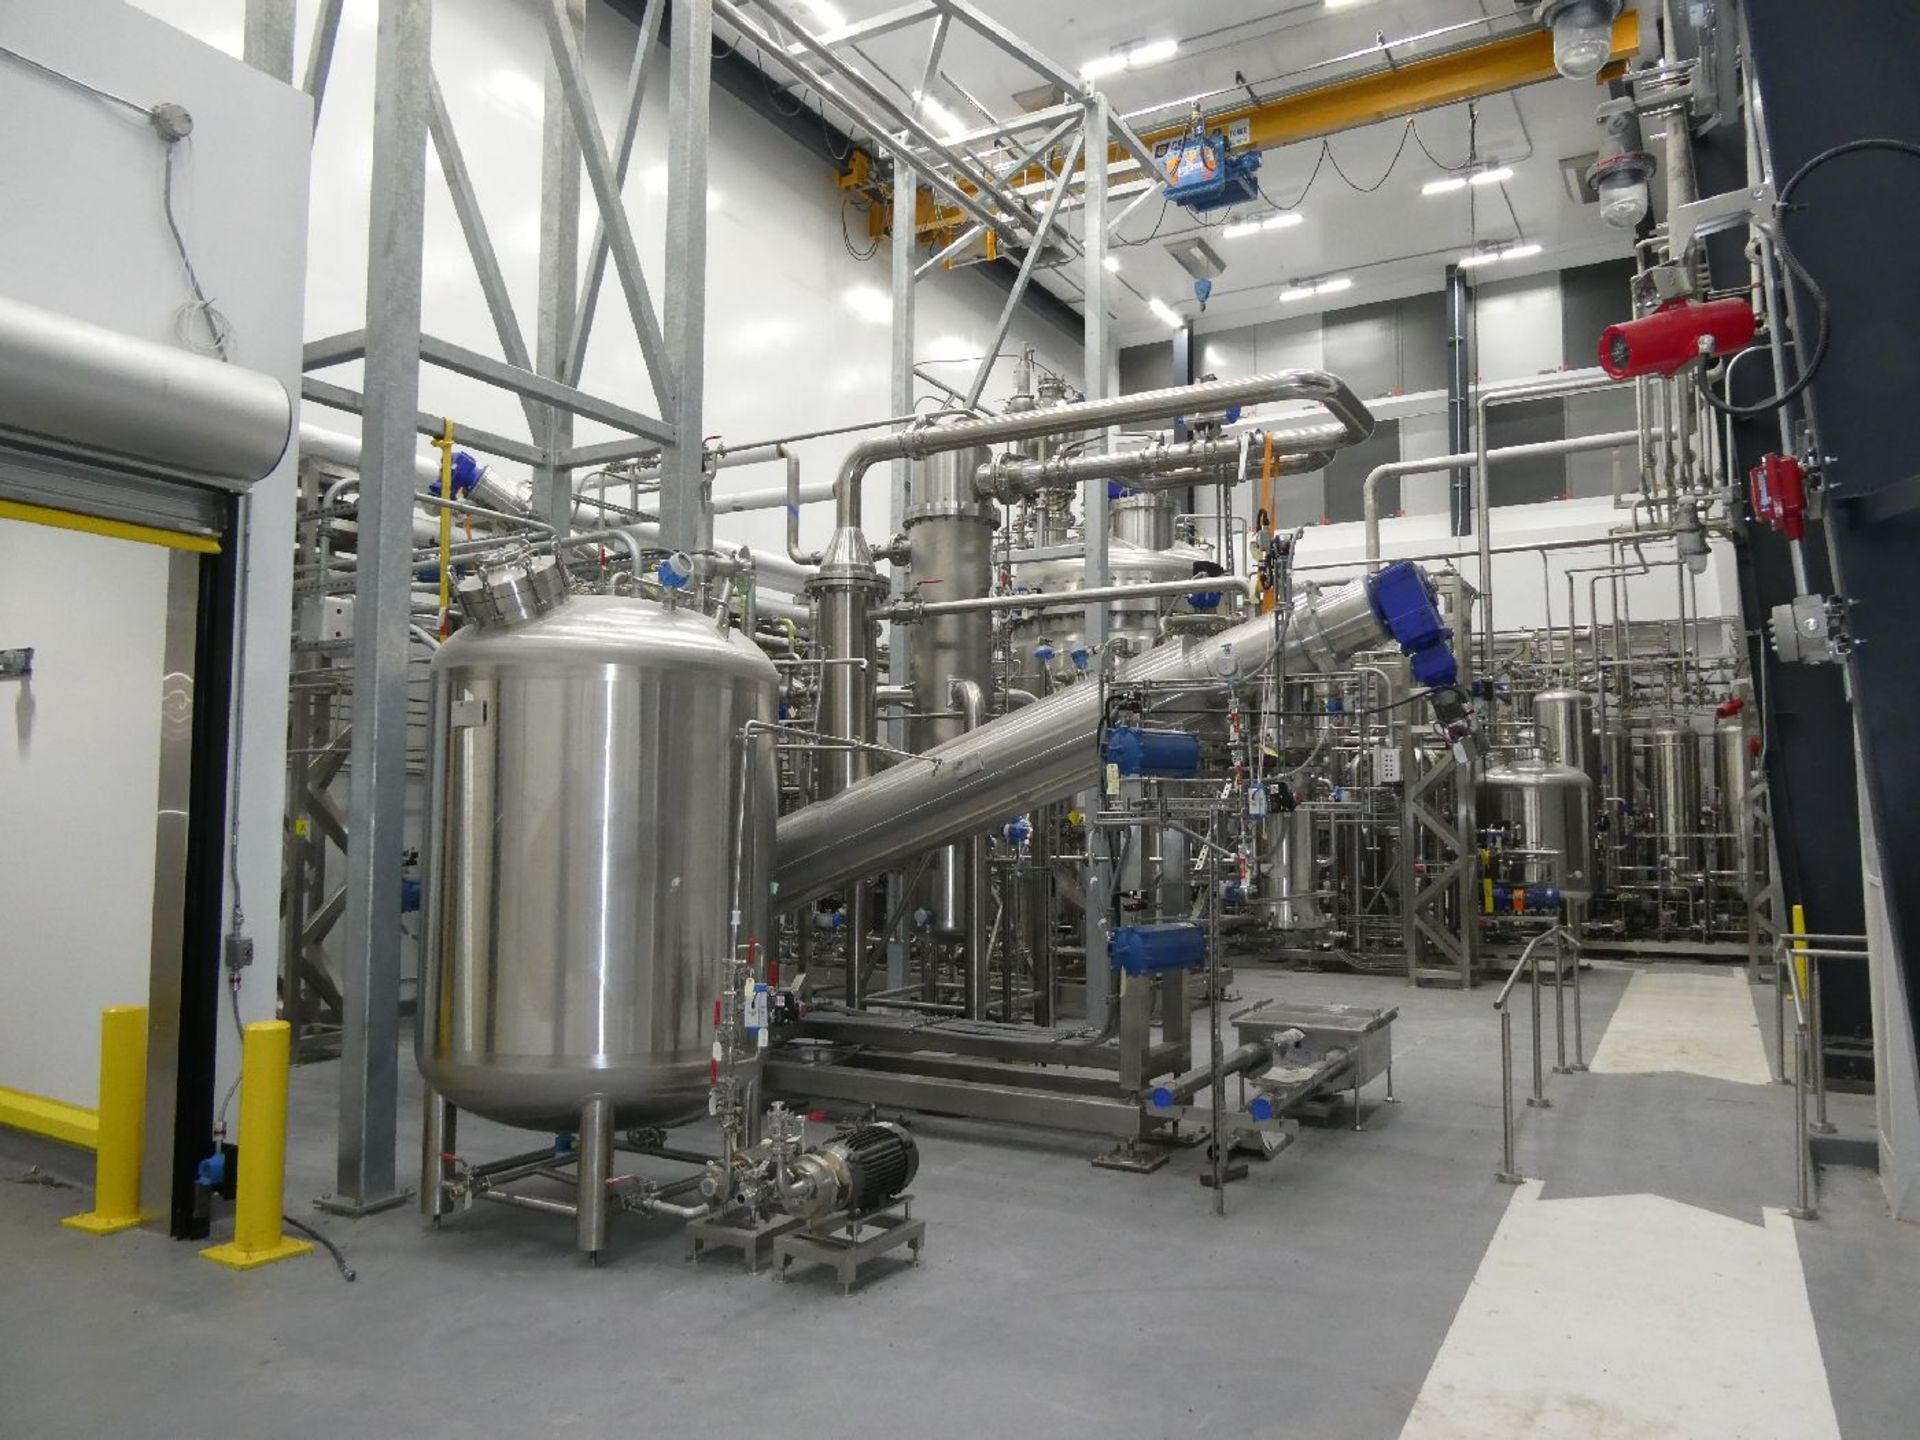 ROTAX Closed Loop Solvent Based Continuous Oil Extraction System - Image 2 of 68